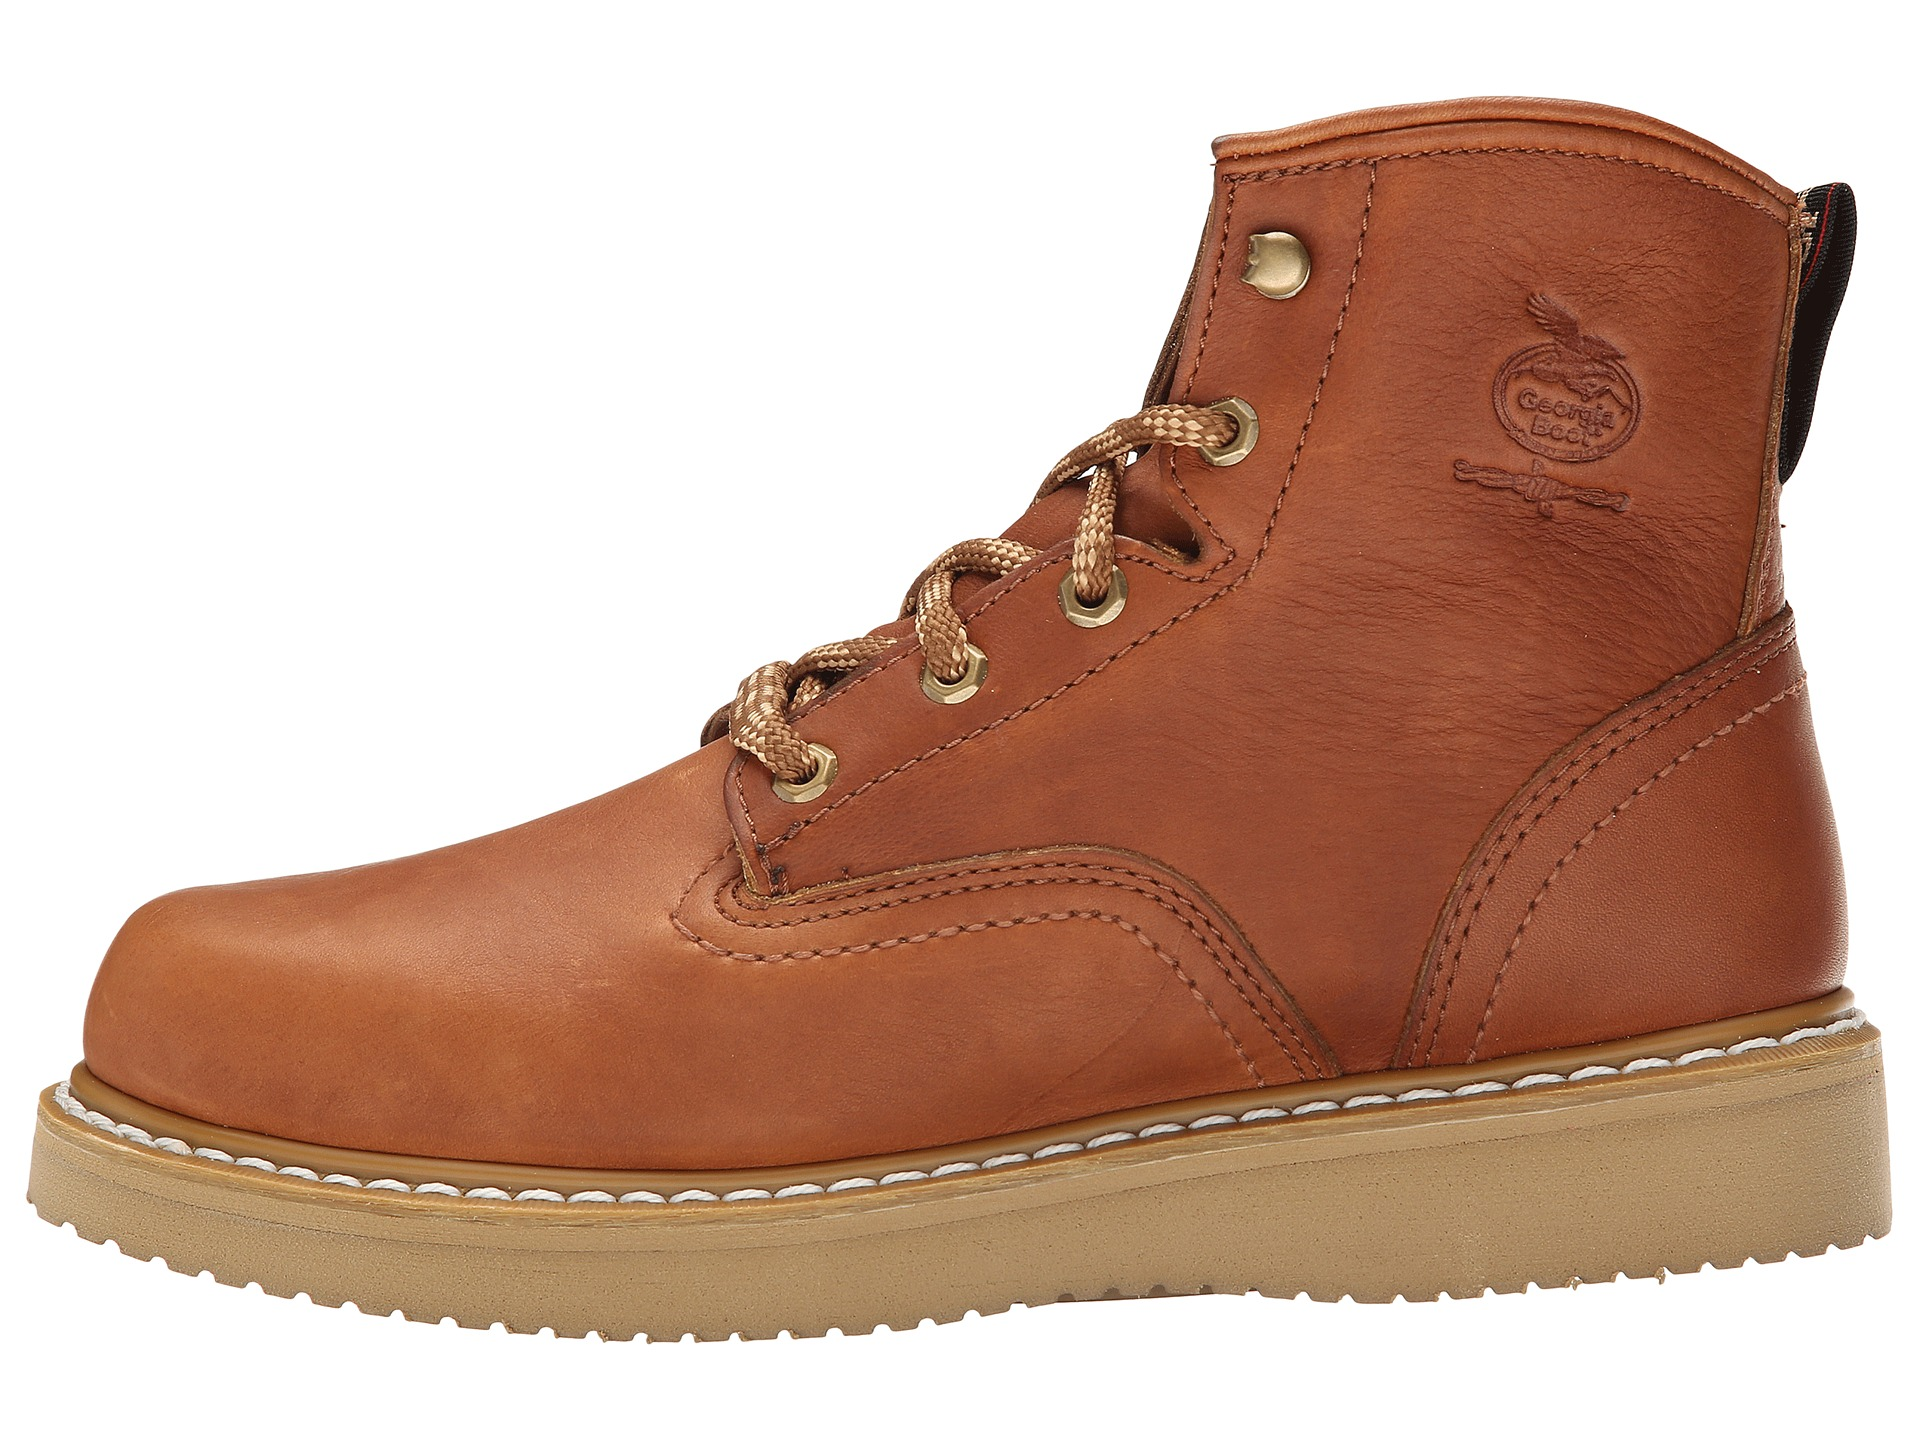 boot 6 quot wedge boot at zappos